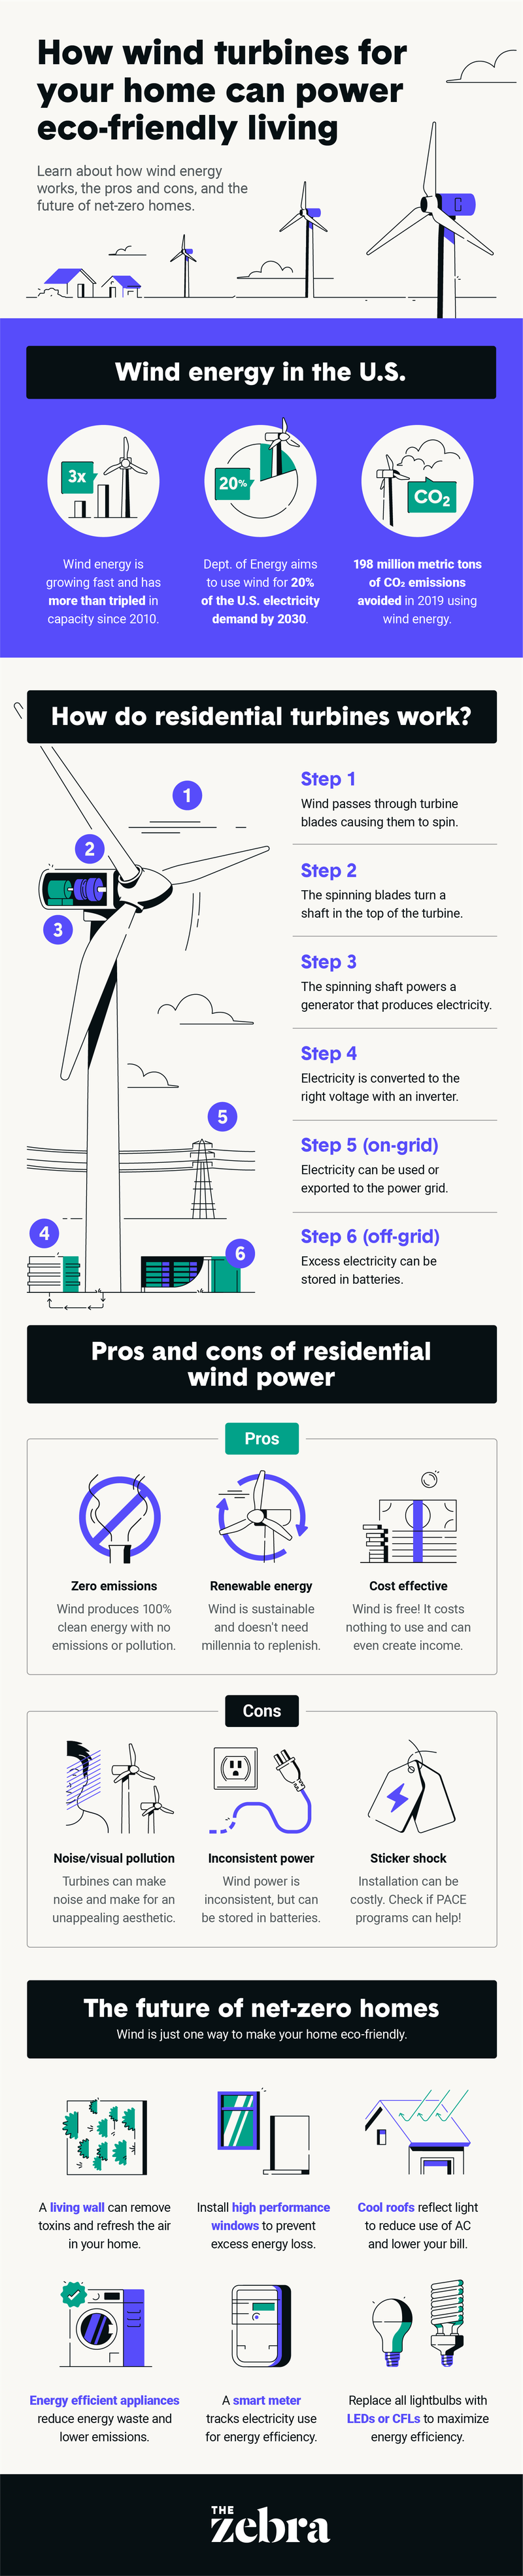 how-wind-turbines-can-power-eco-friendly-living.png